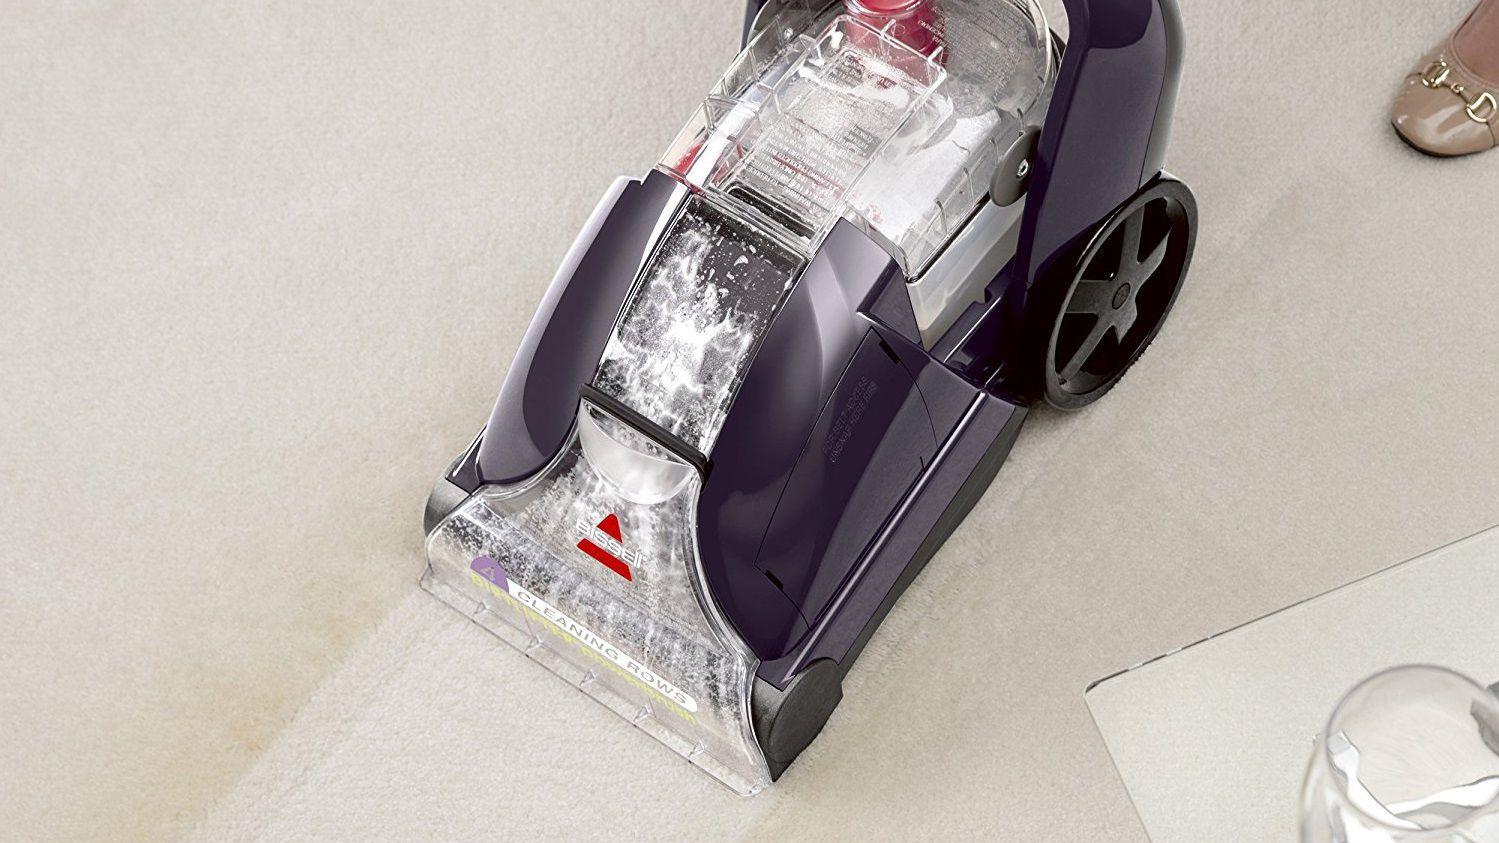 The best carpet cleaners for high-traffic areas